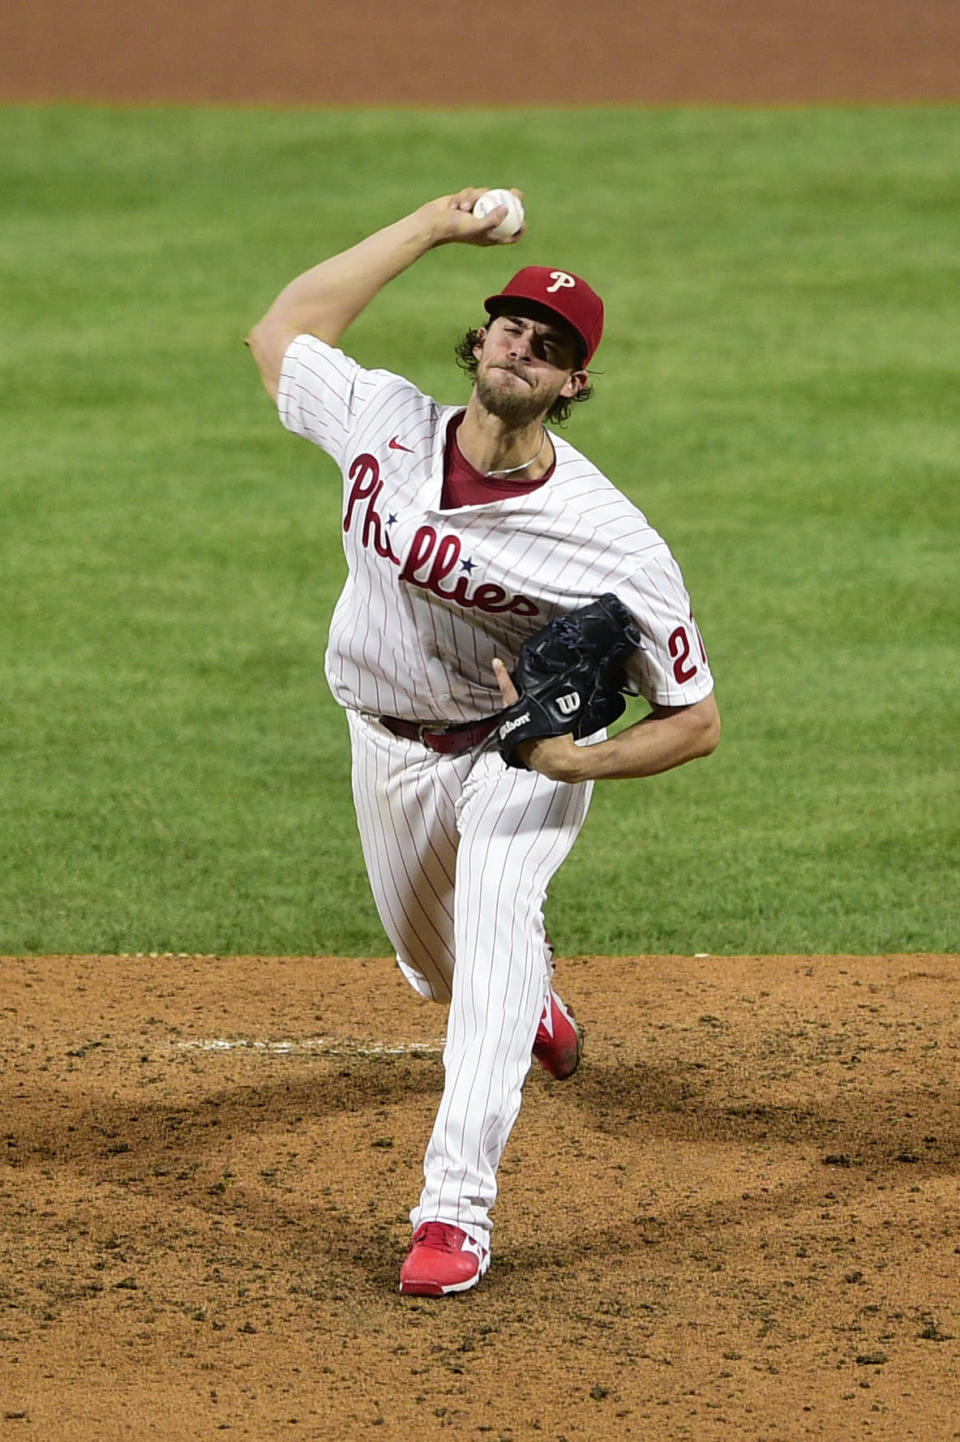 Philadelphia Phillies' Aaron Nola throws the ball during the fourth inning of a baseball game against the Milwaukee Brewers, Tuesday, May 4, 2021, in Philadelphia. (AP Photo/Derik Hamilton)